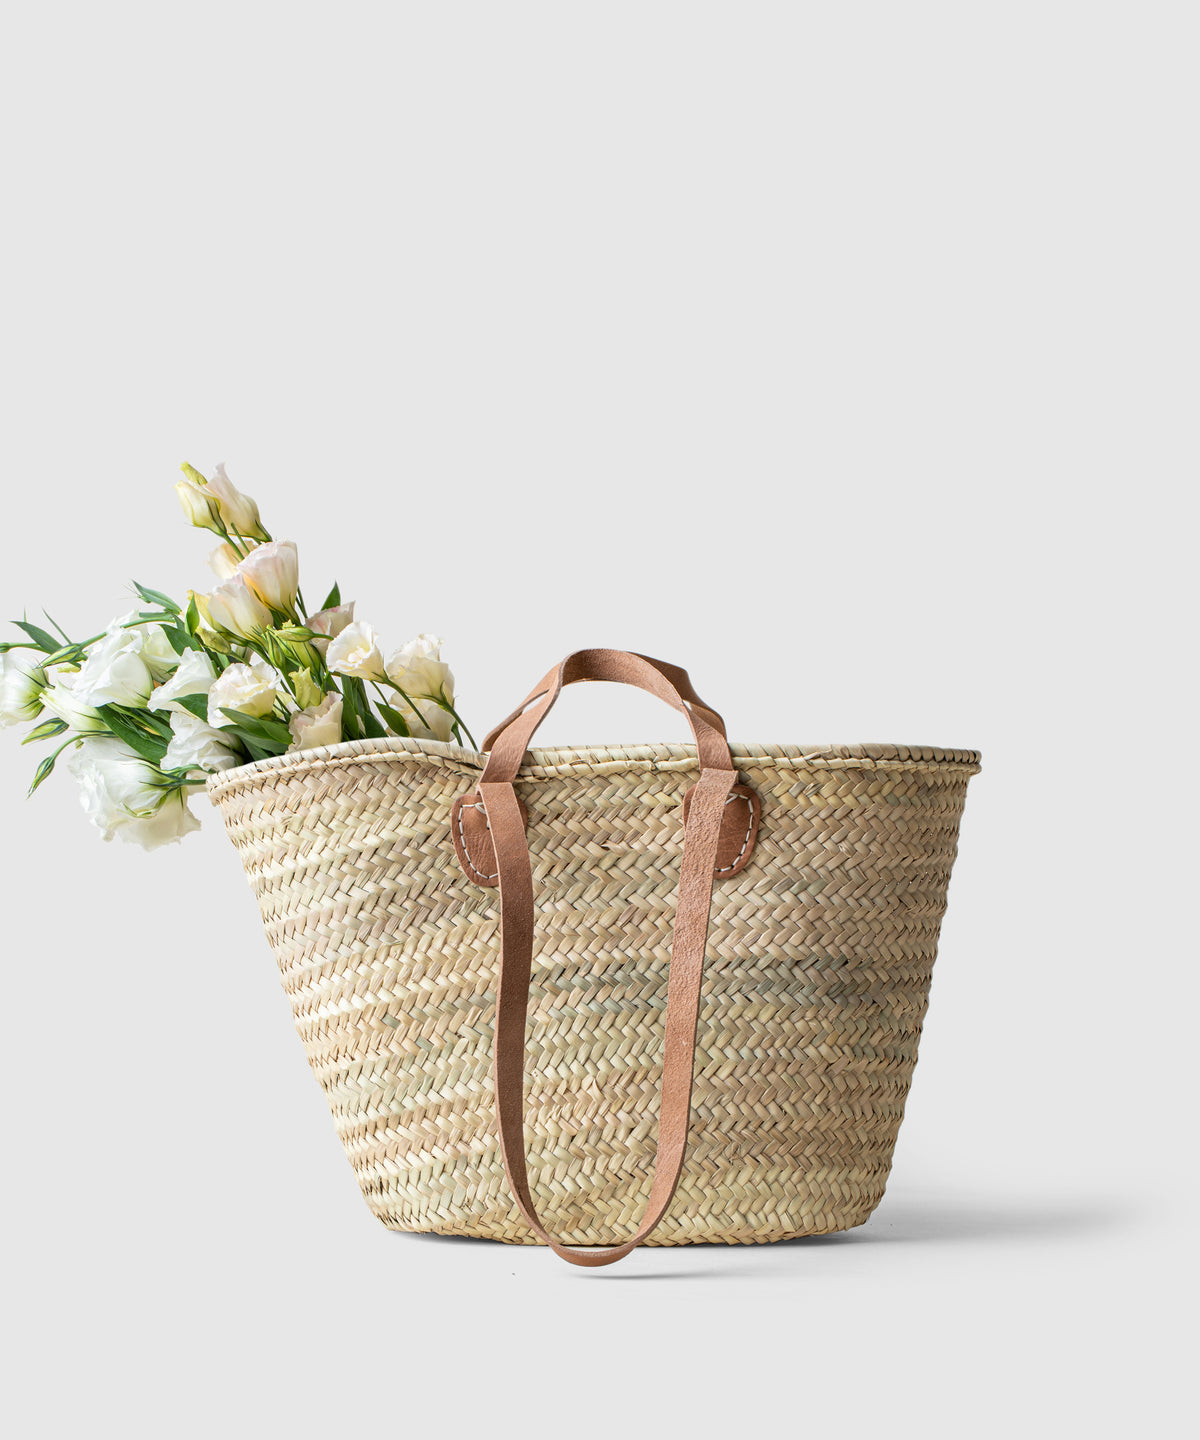 Palm Leaf & Leather Generous French Market Tote